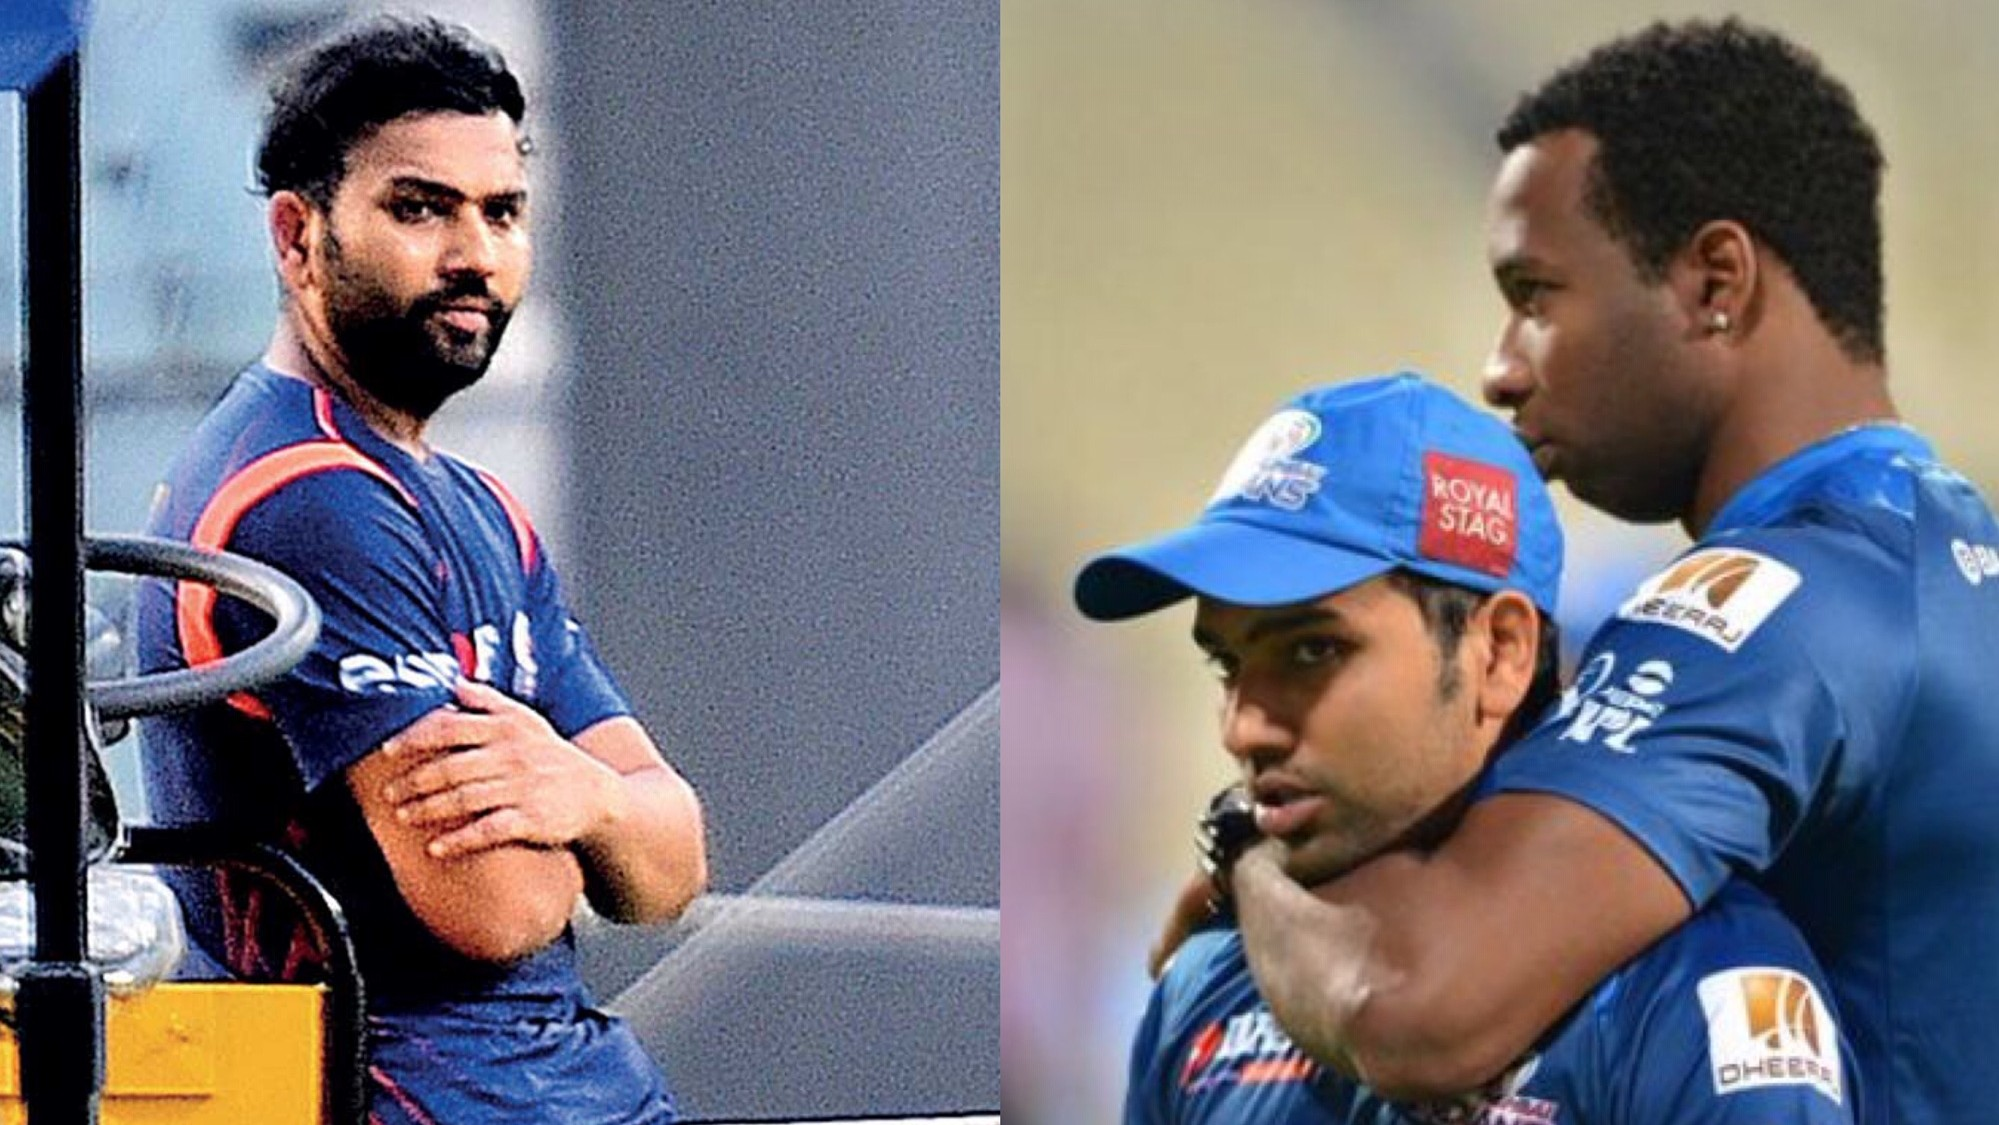 Kieron Pollard unfollows Mumbai Indians captain Rohit Sharma on Twitter